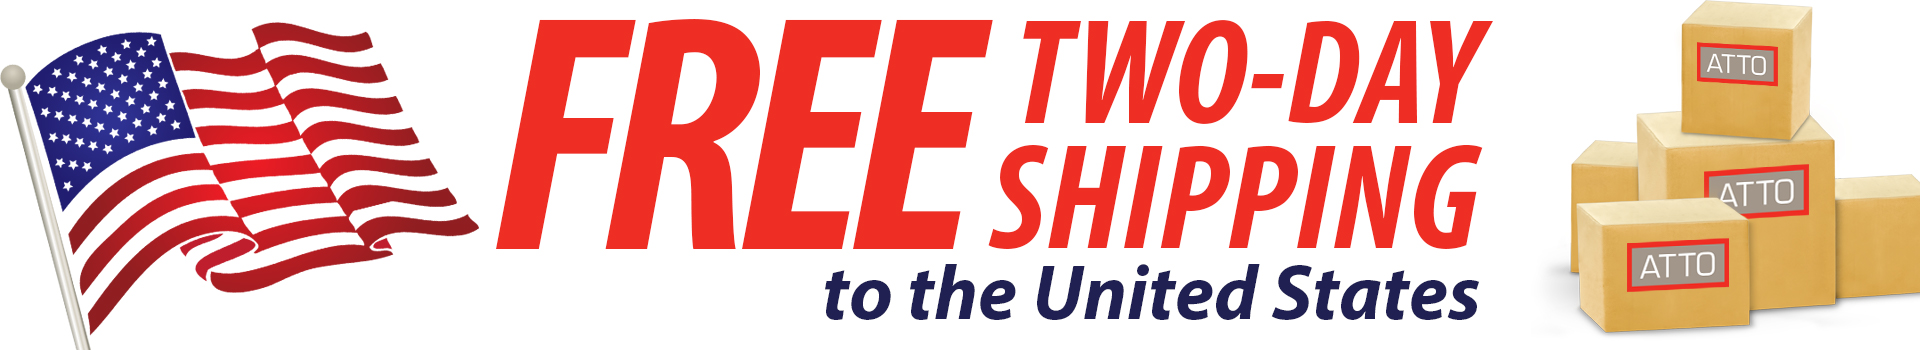 FREE 2-DAY SHIPPING to the United States and Canada